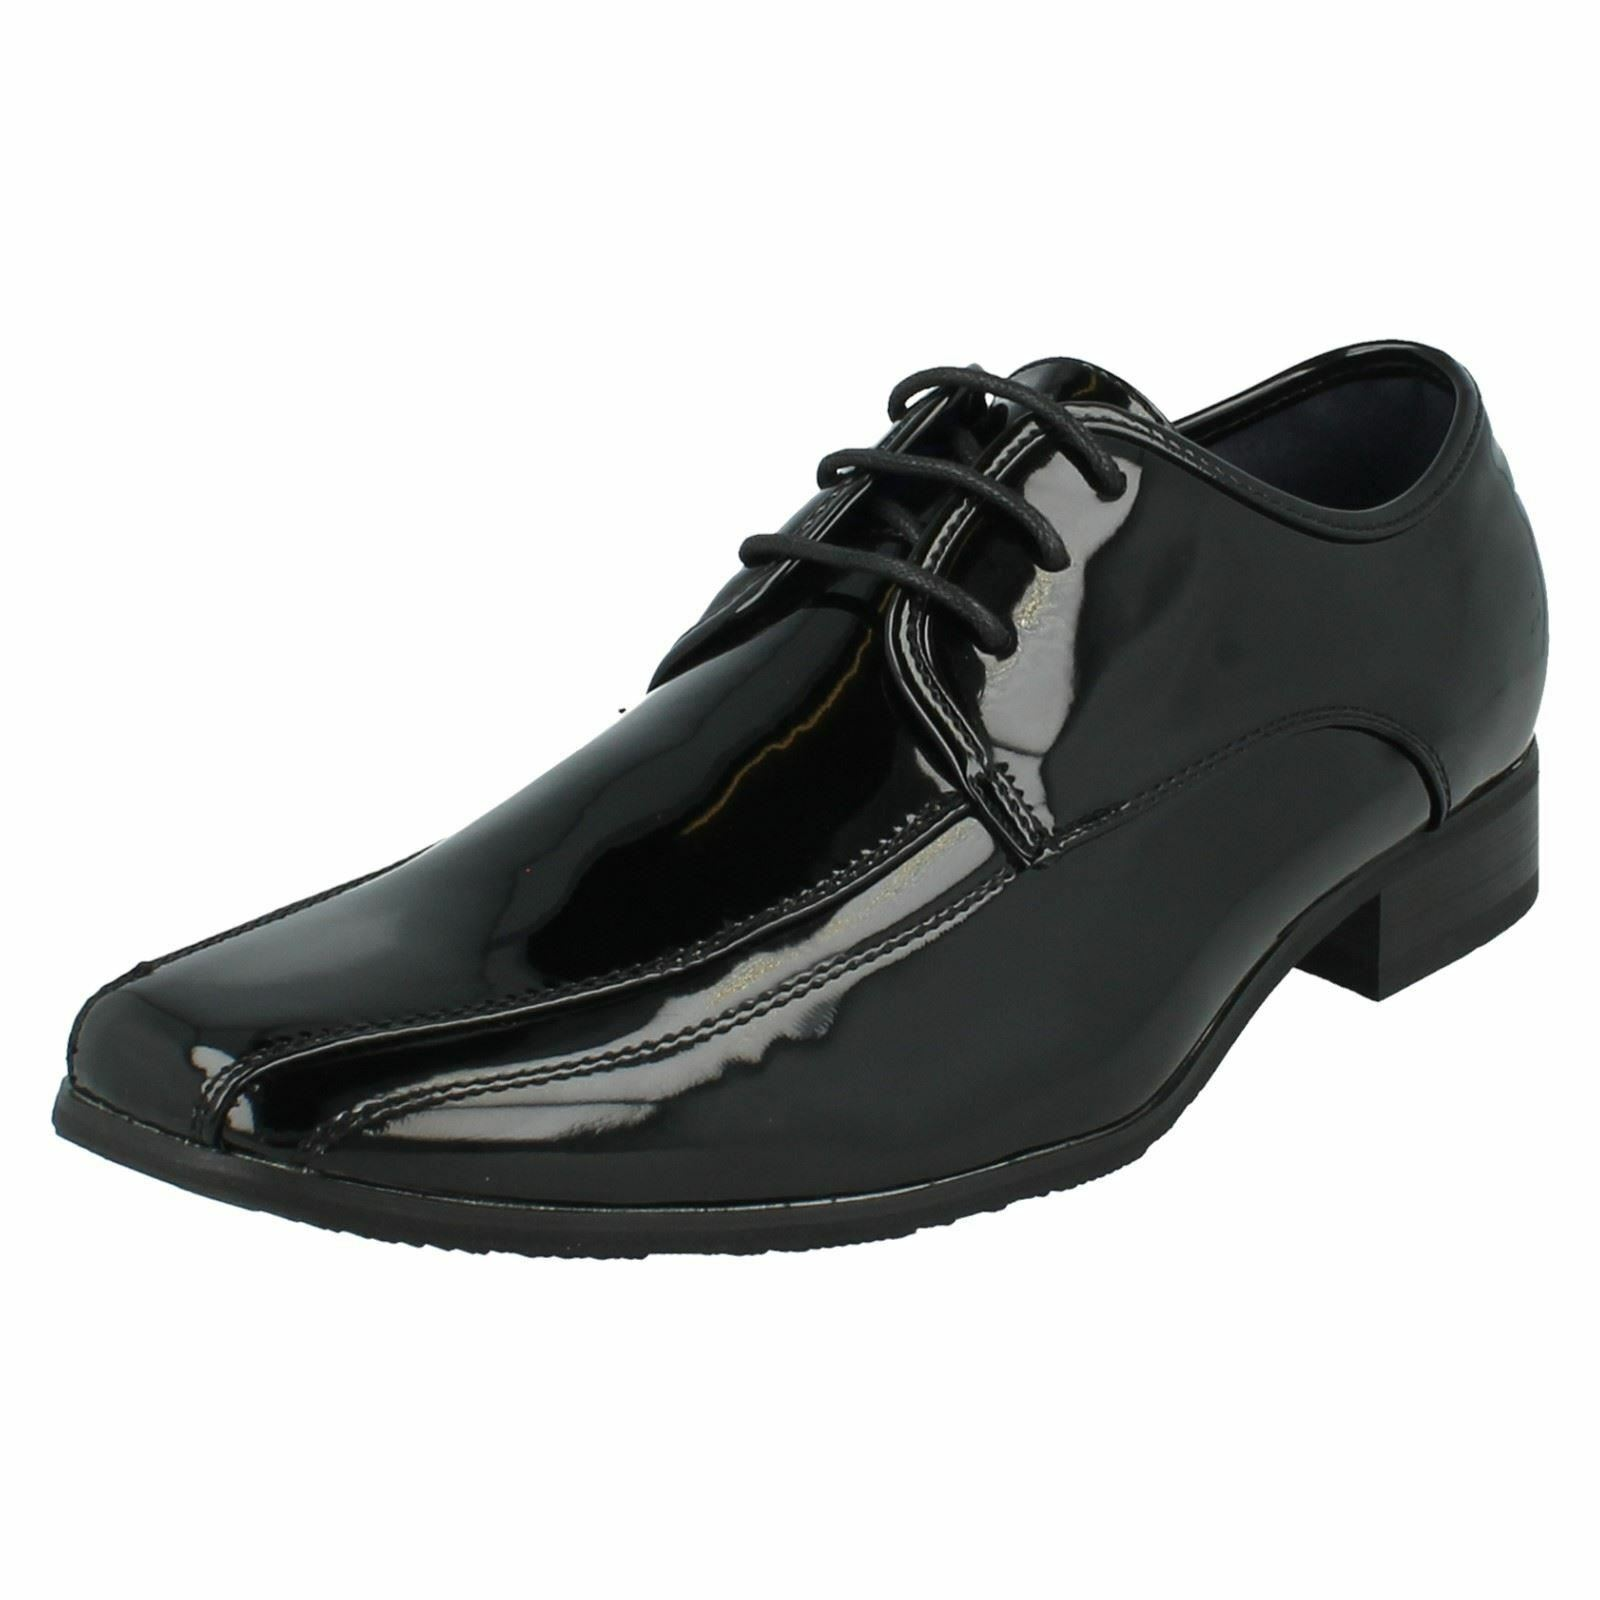 Gentlemen/Ladies Mens Win Malvern Shoes - A2072 Many styles Win Mens highly appreciated wonderful a962a8